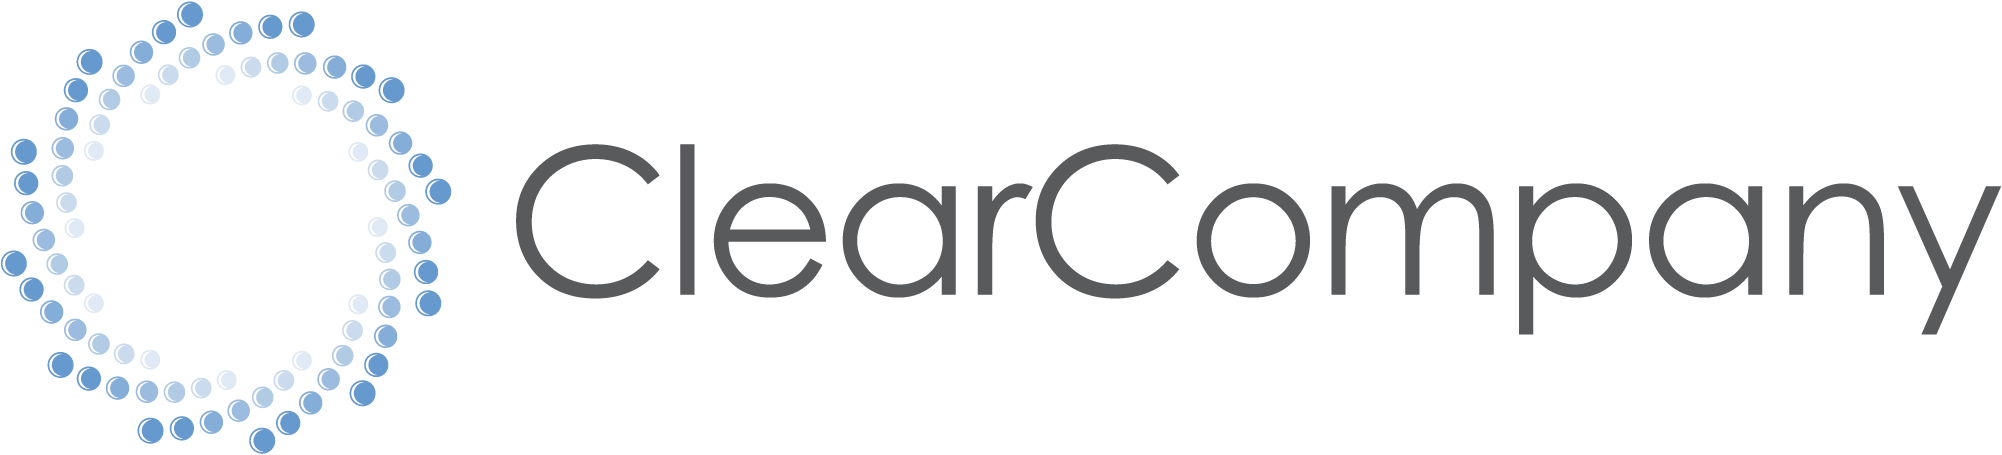 ClearCompany_Logo-1.png